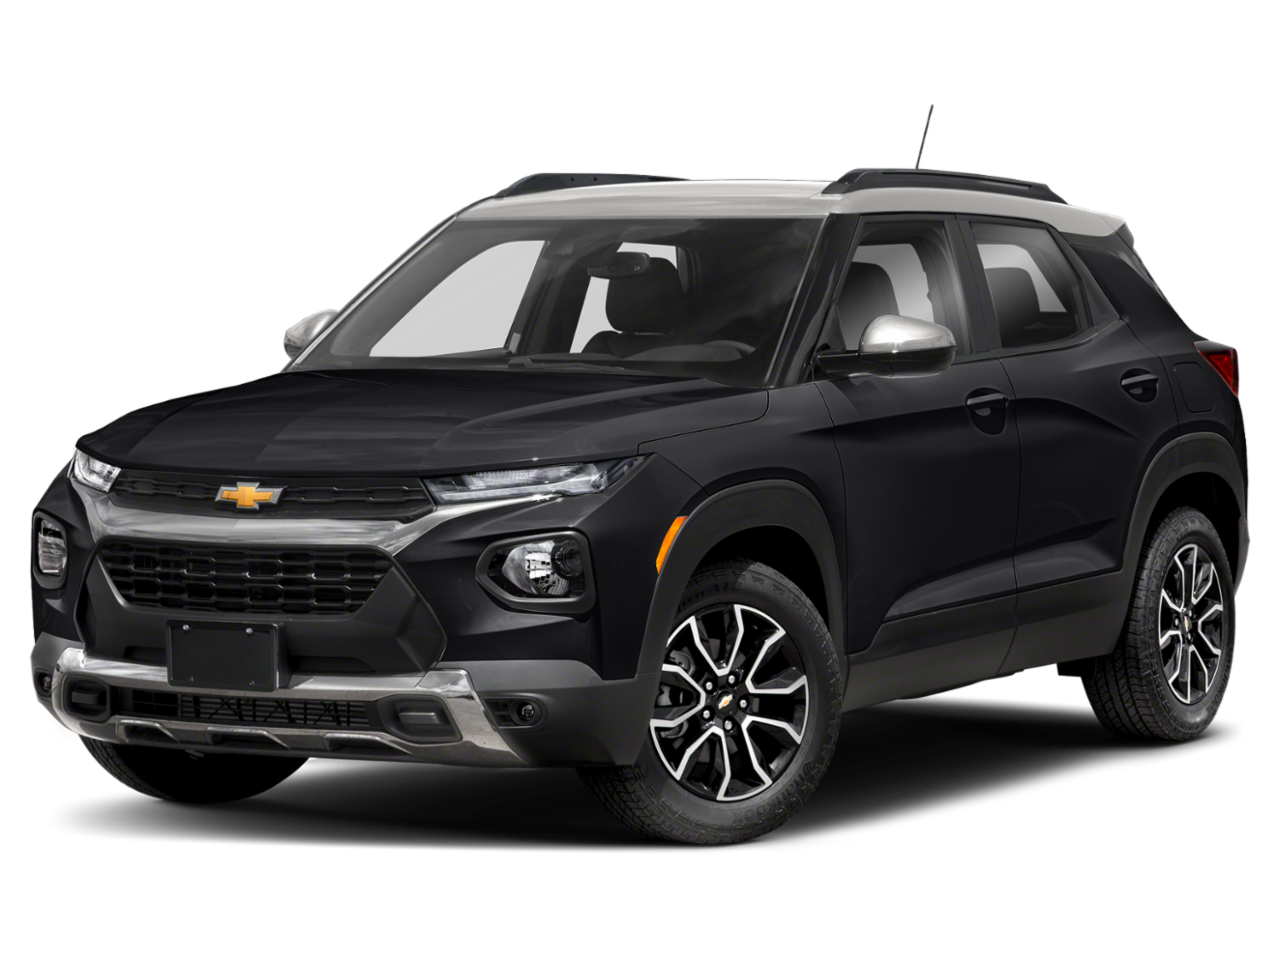 Chevrolet 2021 Trailblazer LT